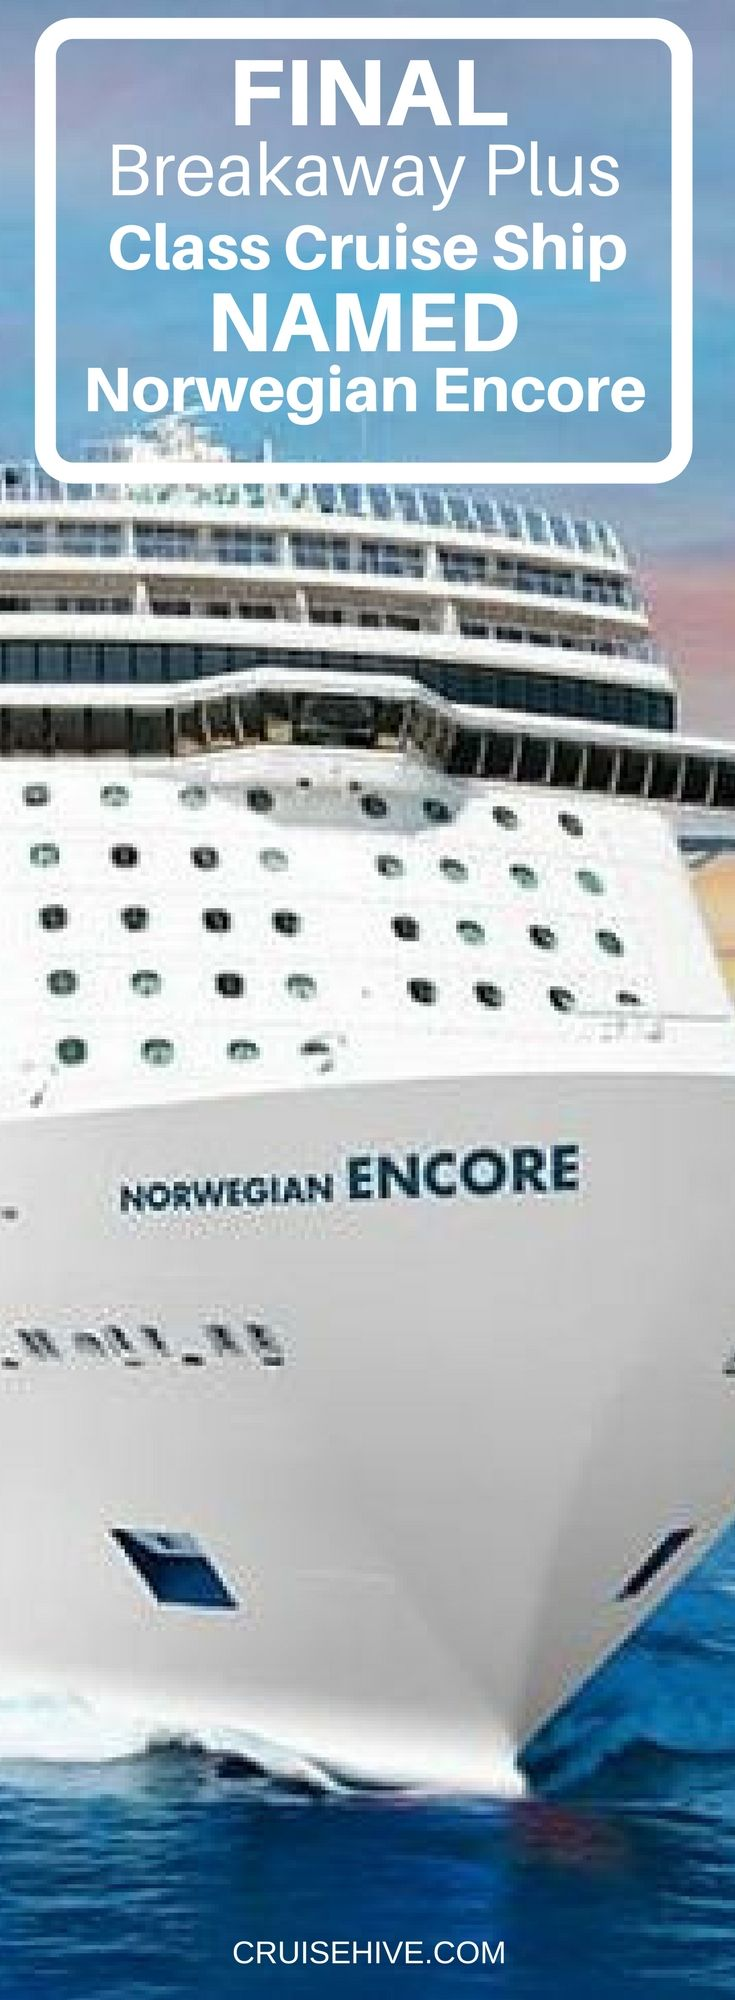 Final Breakaway Plus Class cruise ship to be named Norwegian Encore and first steel cut at the Meyer Werft shipyard in Papenburg, Germany.